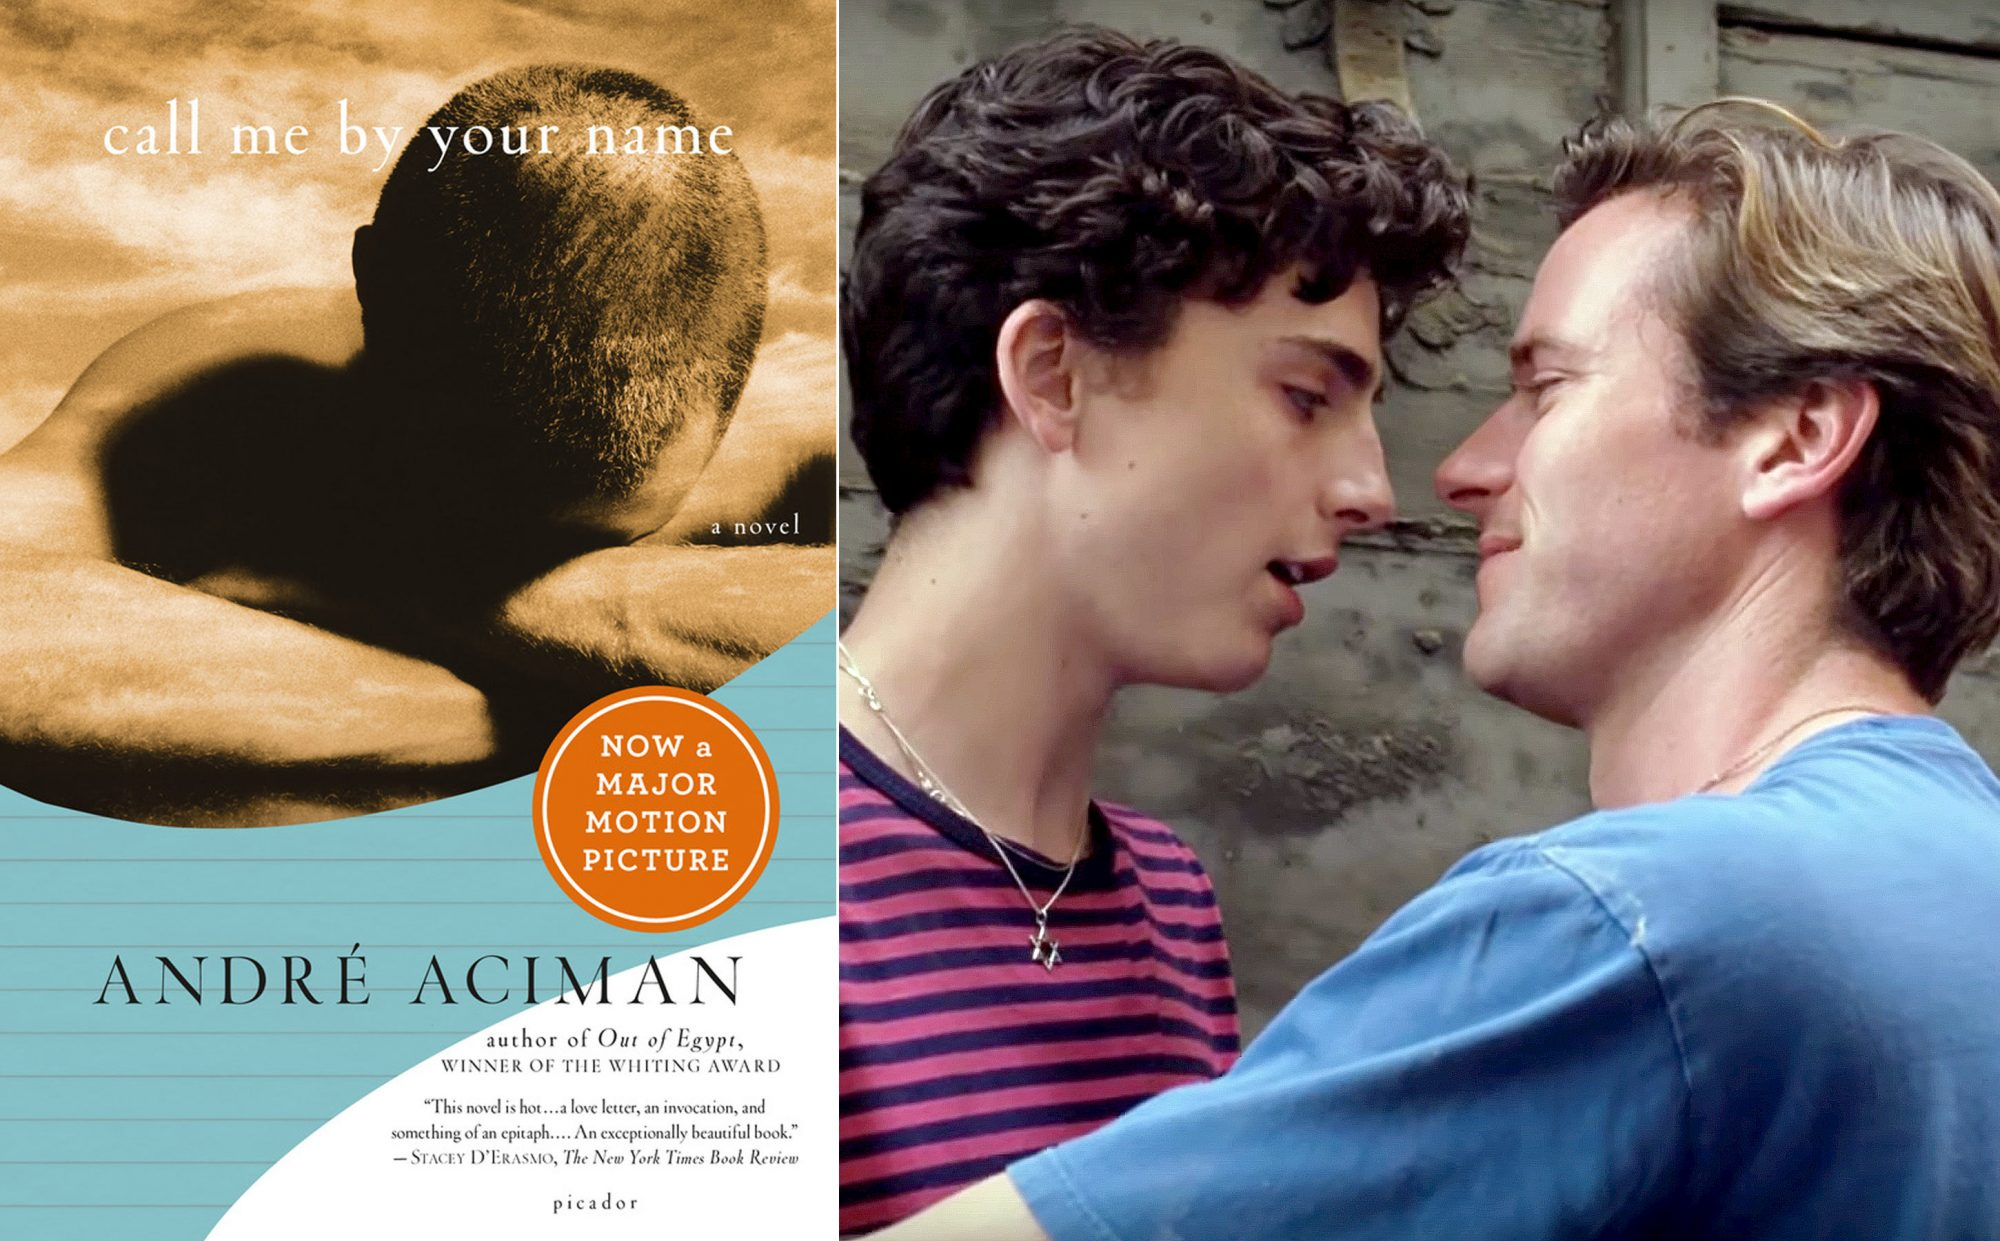 Call Me By Your Name book / movie